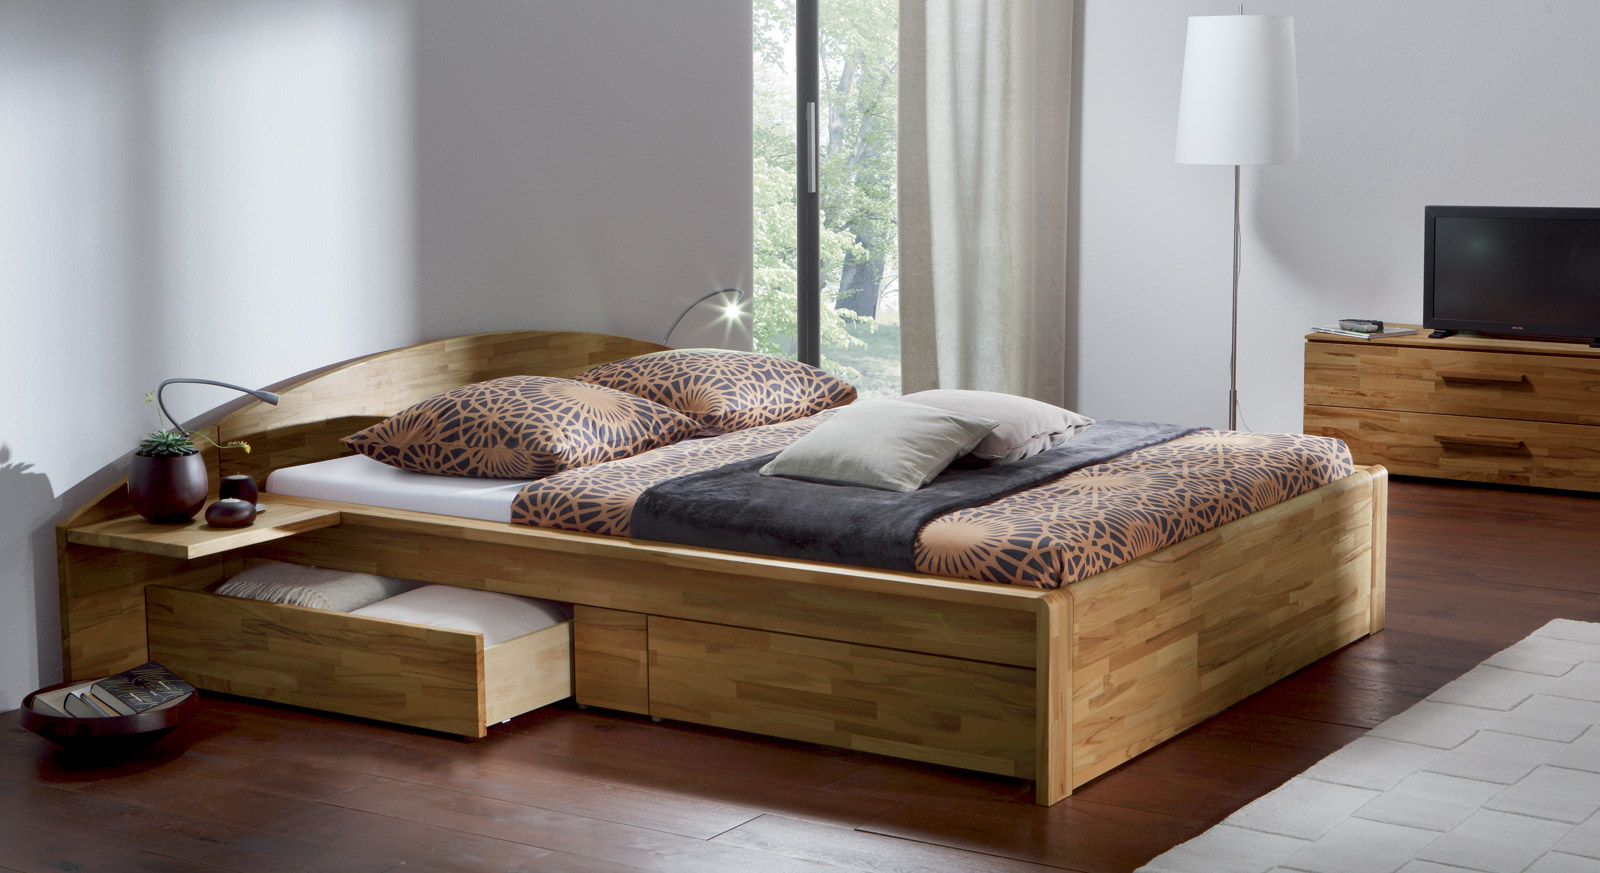 doppelbett mit stauraum aus kernbuche bett helsinki. Black Bedroom Furniture Sets. Home Design Ideas